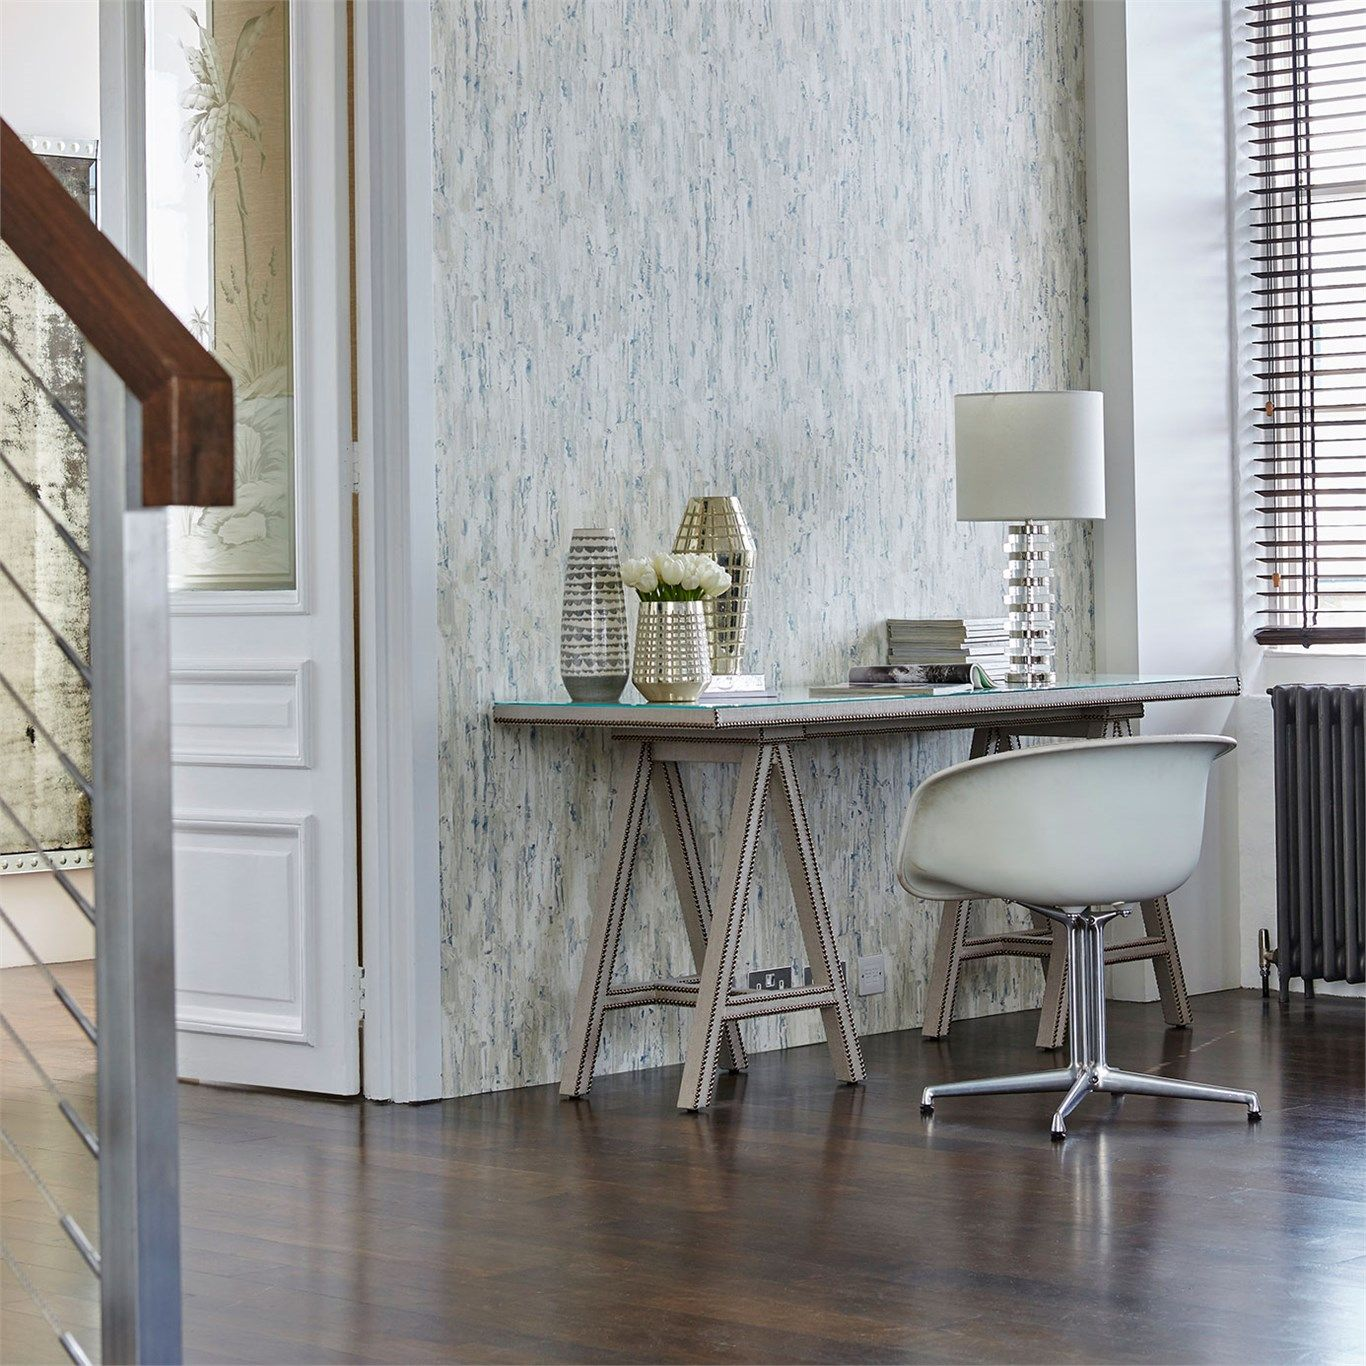 office wallpapers design. Capas By Harlequin Is An All Over, Vinyl Wallpaper Design Featuring A Distressed Plaster Effect Pattern. Office Wallpapers